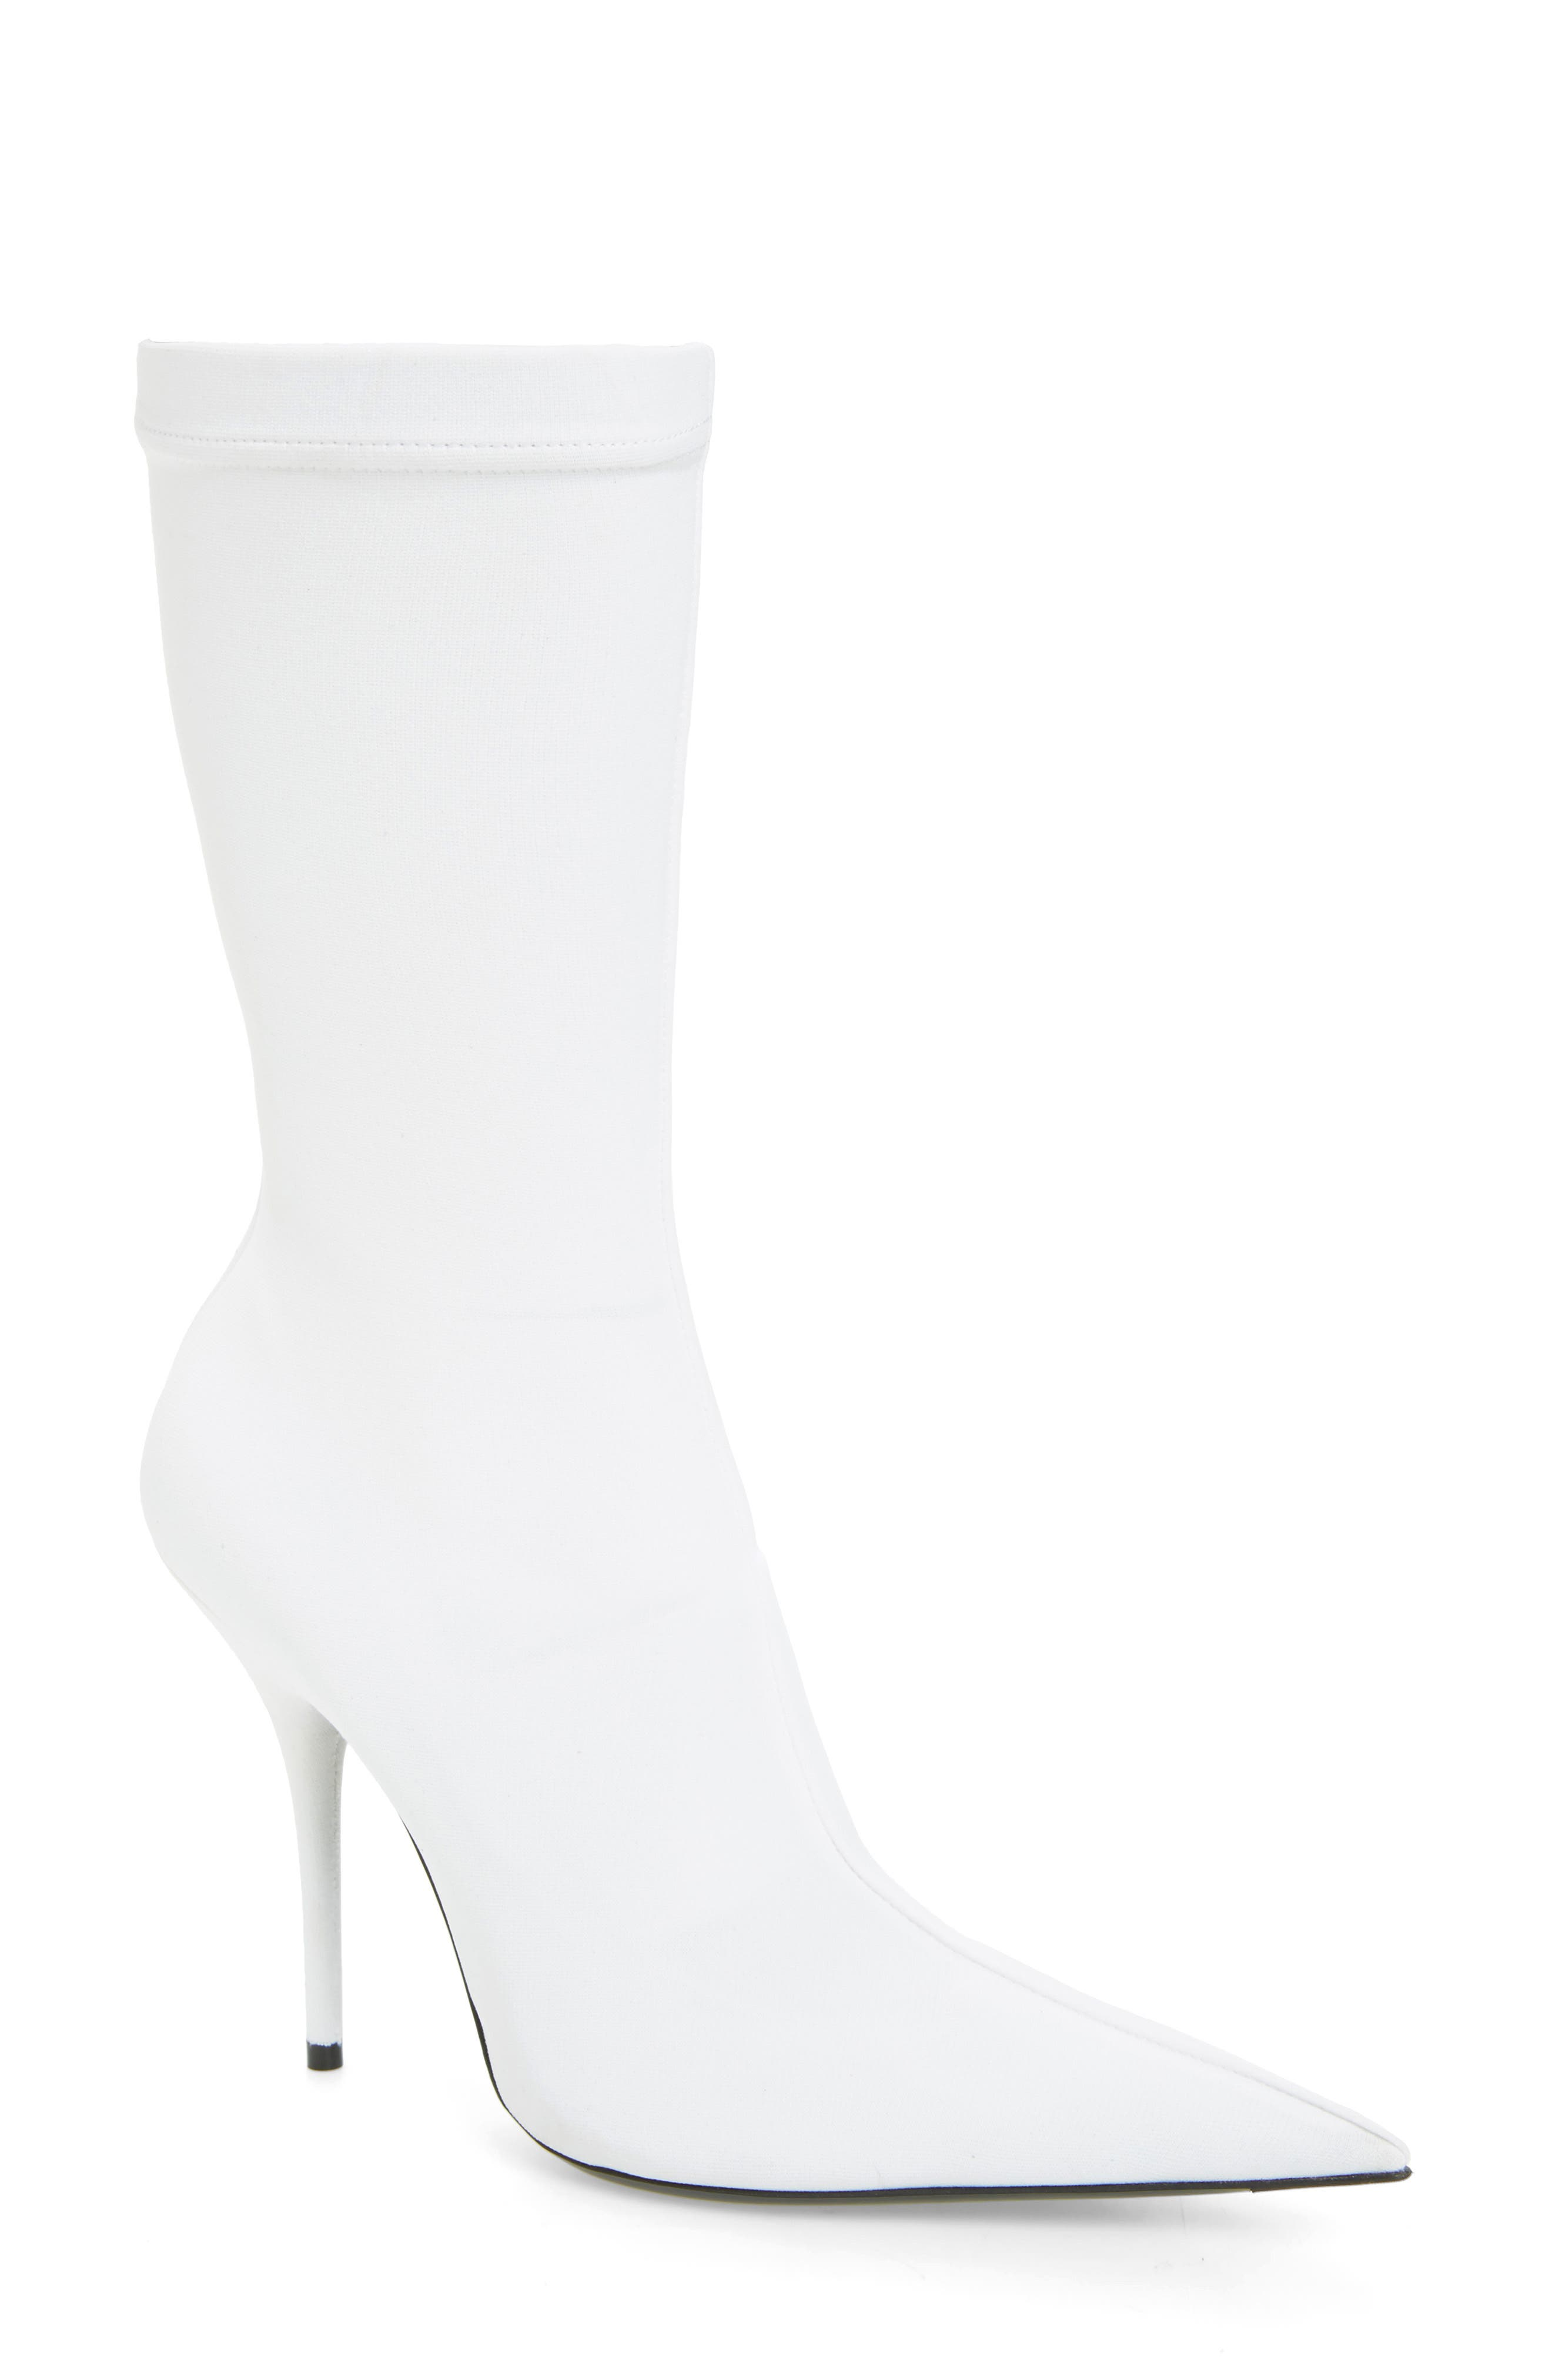 Alternate Image 1 Selected - Balenciaga Pointy Toe Mid Boot (Women)